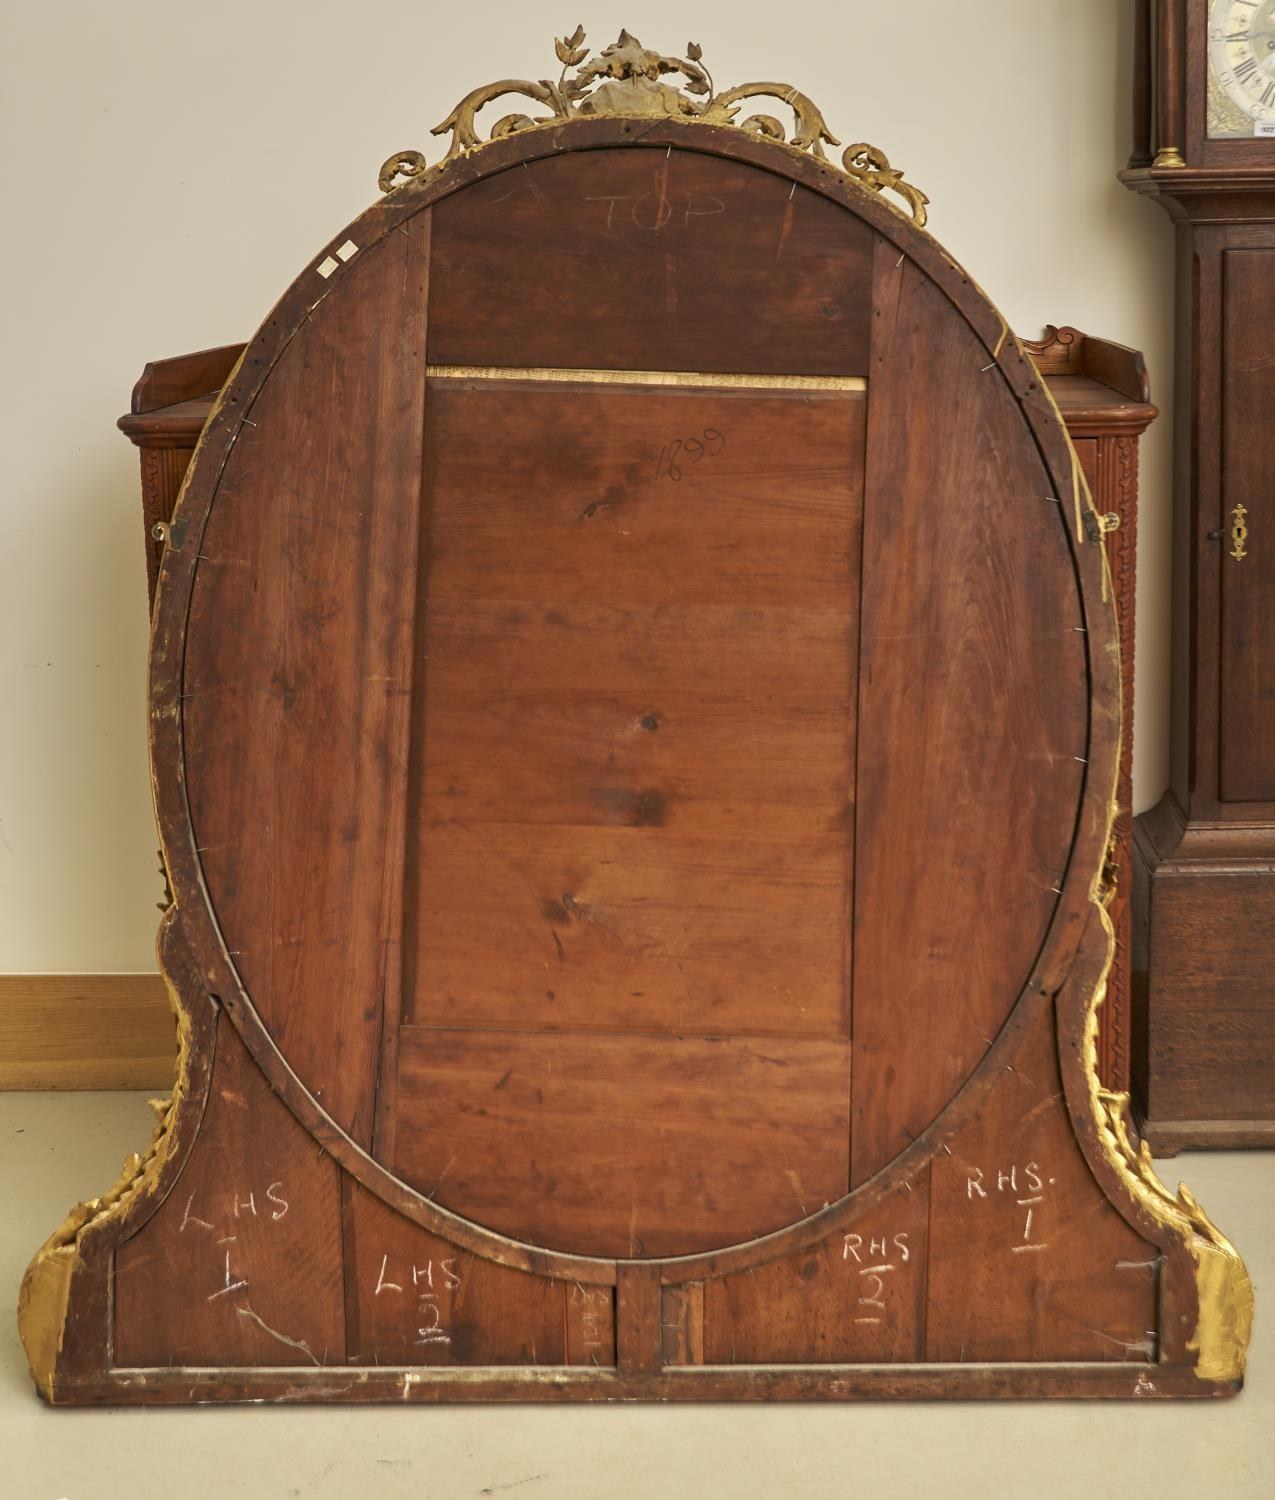 A VICTORIAN OVAL AND GILTWOOD COMPOSITION OVERMANTLE MIRROR, C1870, THE BEVELLED PLATE IN LAUREL AND - Image 2 of 2